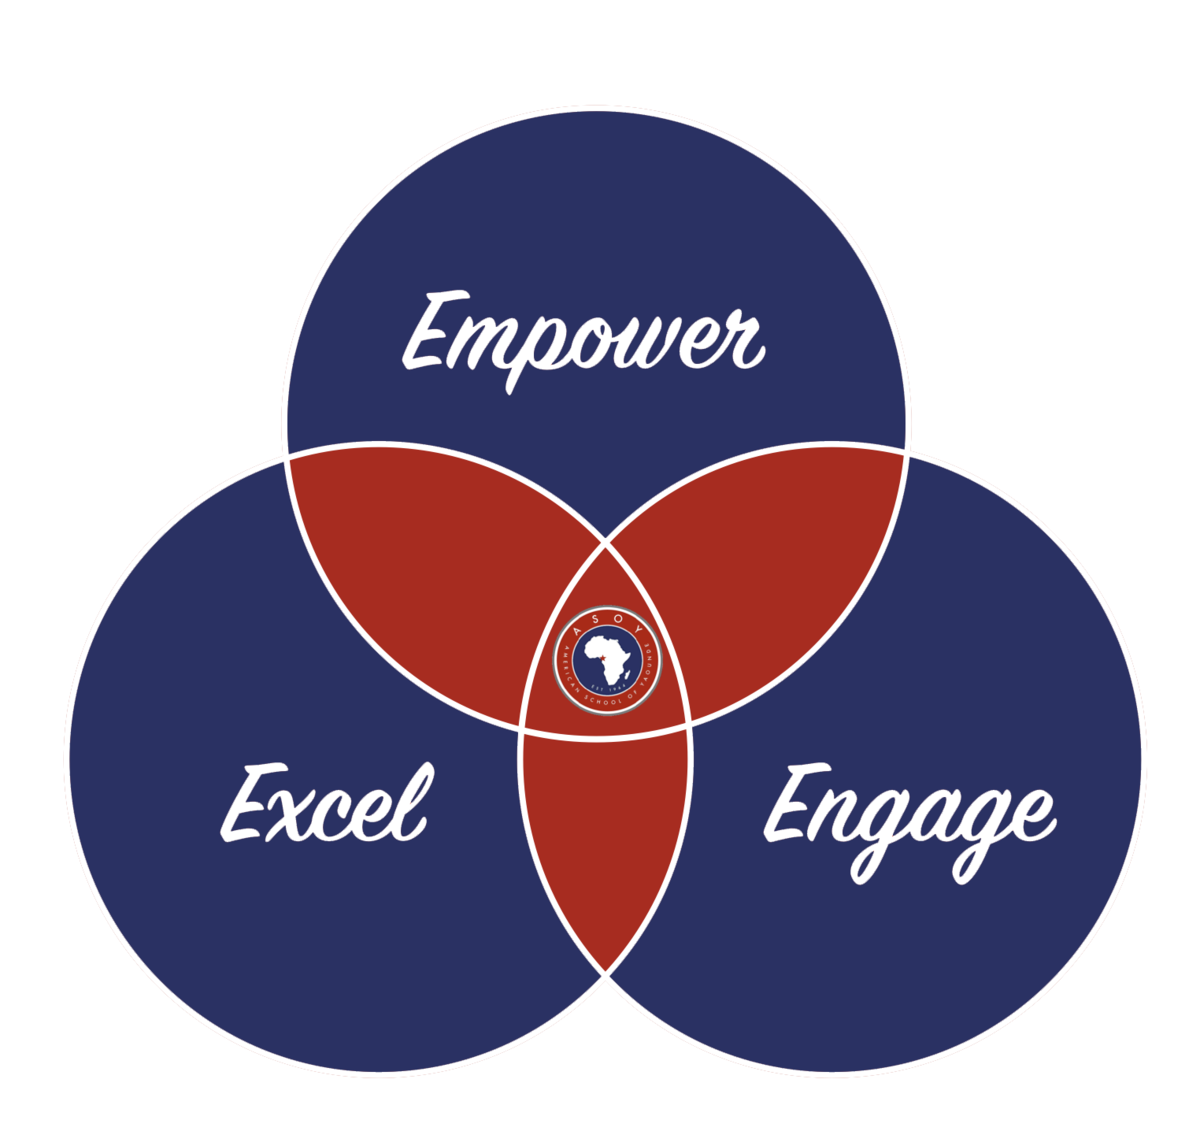 ASOY Mission: Empower, Excel, Engage